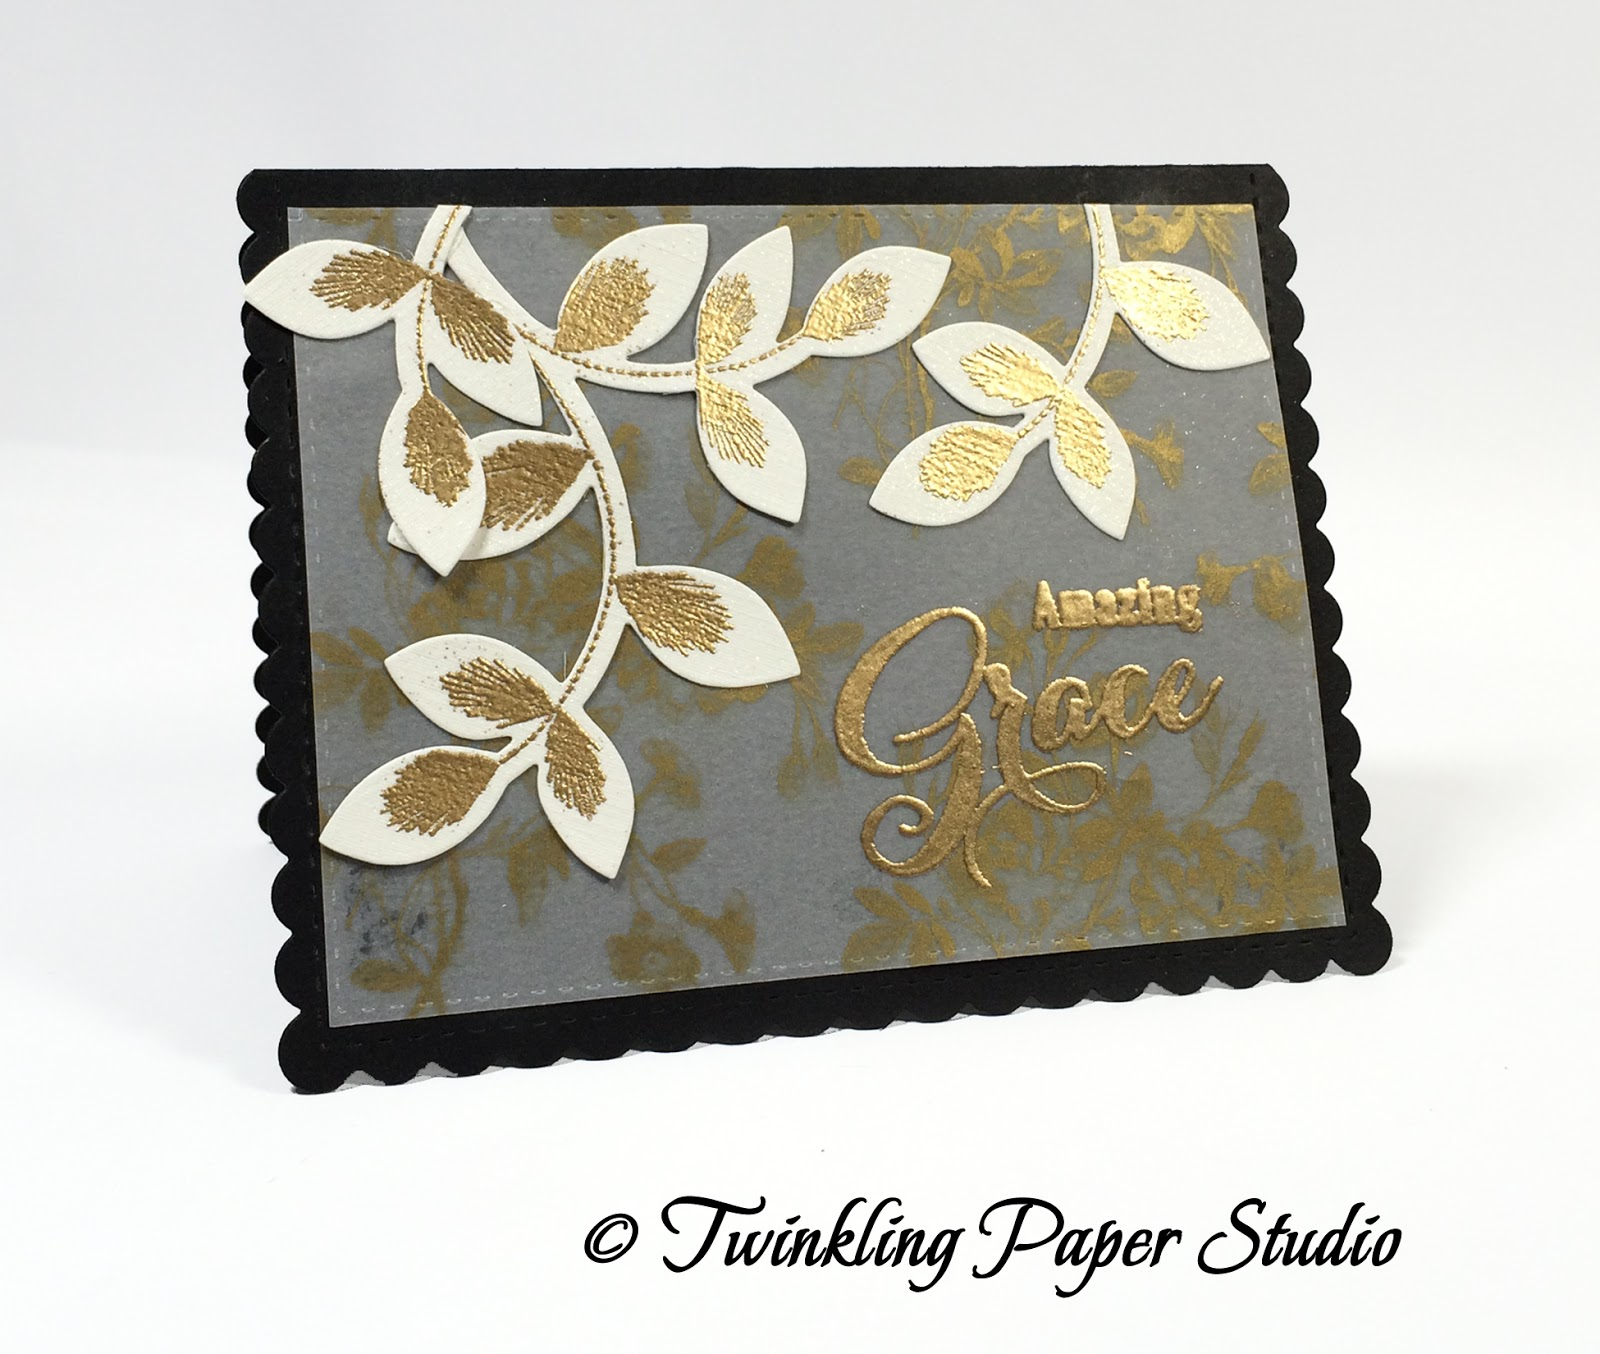 Cream colored cardstock paper studio - Next I Cut Several Of The Large Leafy Stems From Turning A New Leaf Dies And Stamped Them Using The Stamps From Embroidered Blooms